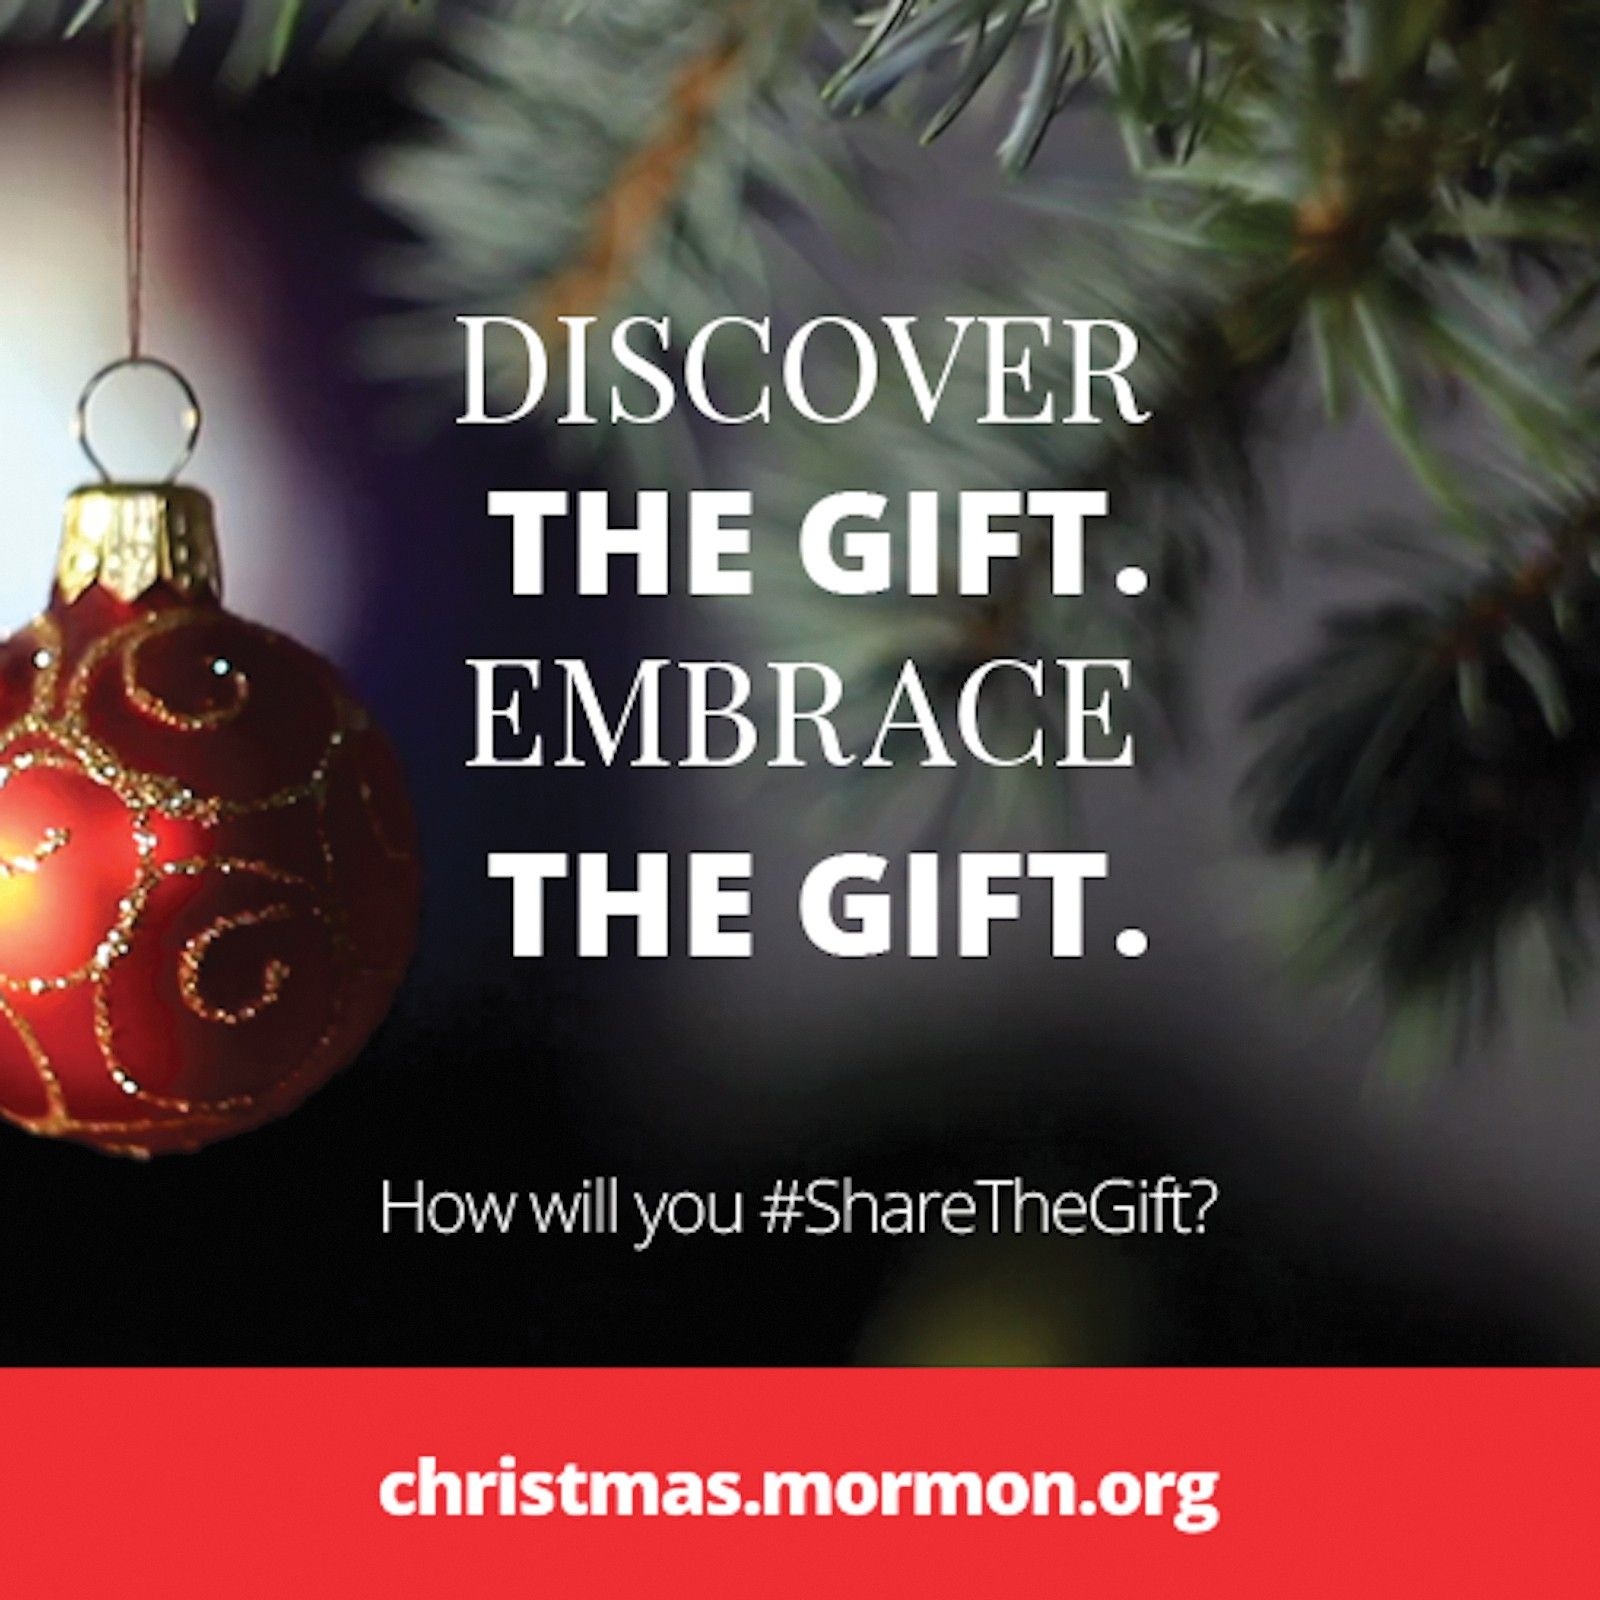 Discover the gift. Embrace the gift. How will you #ShareTheGift? christmas.mormon.org